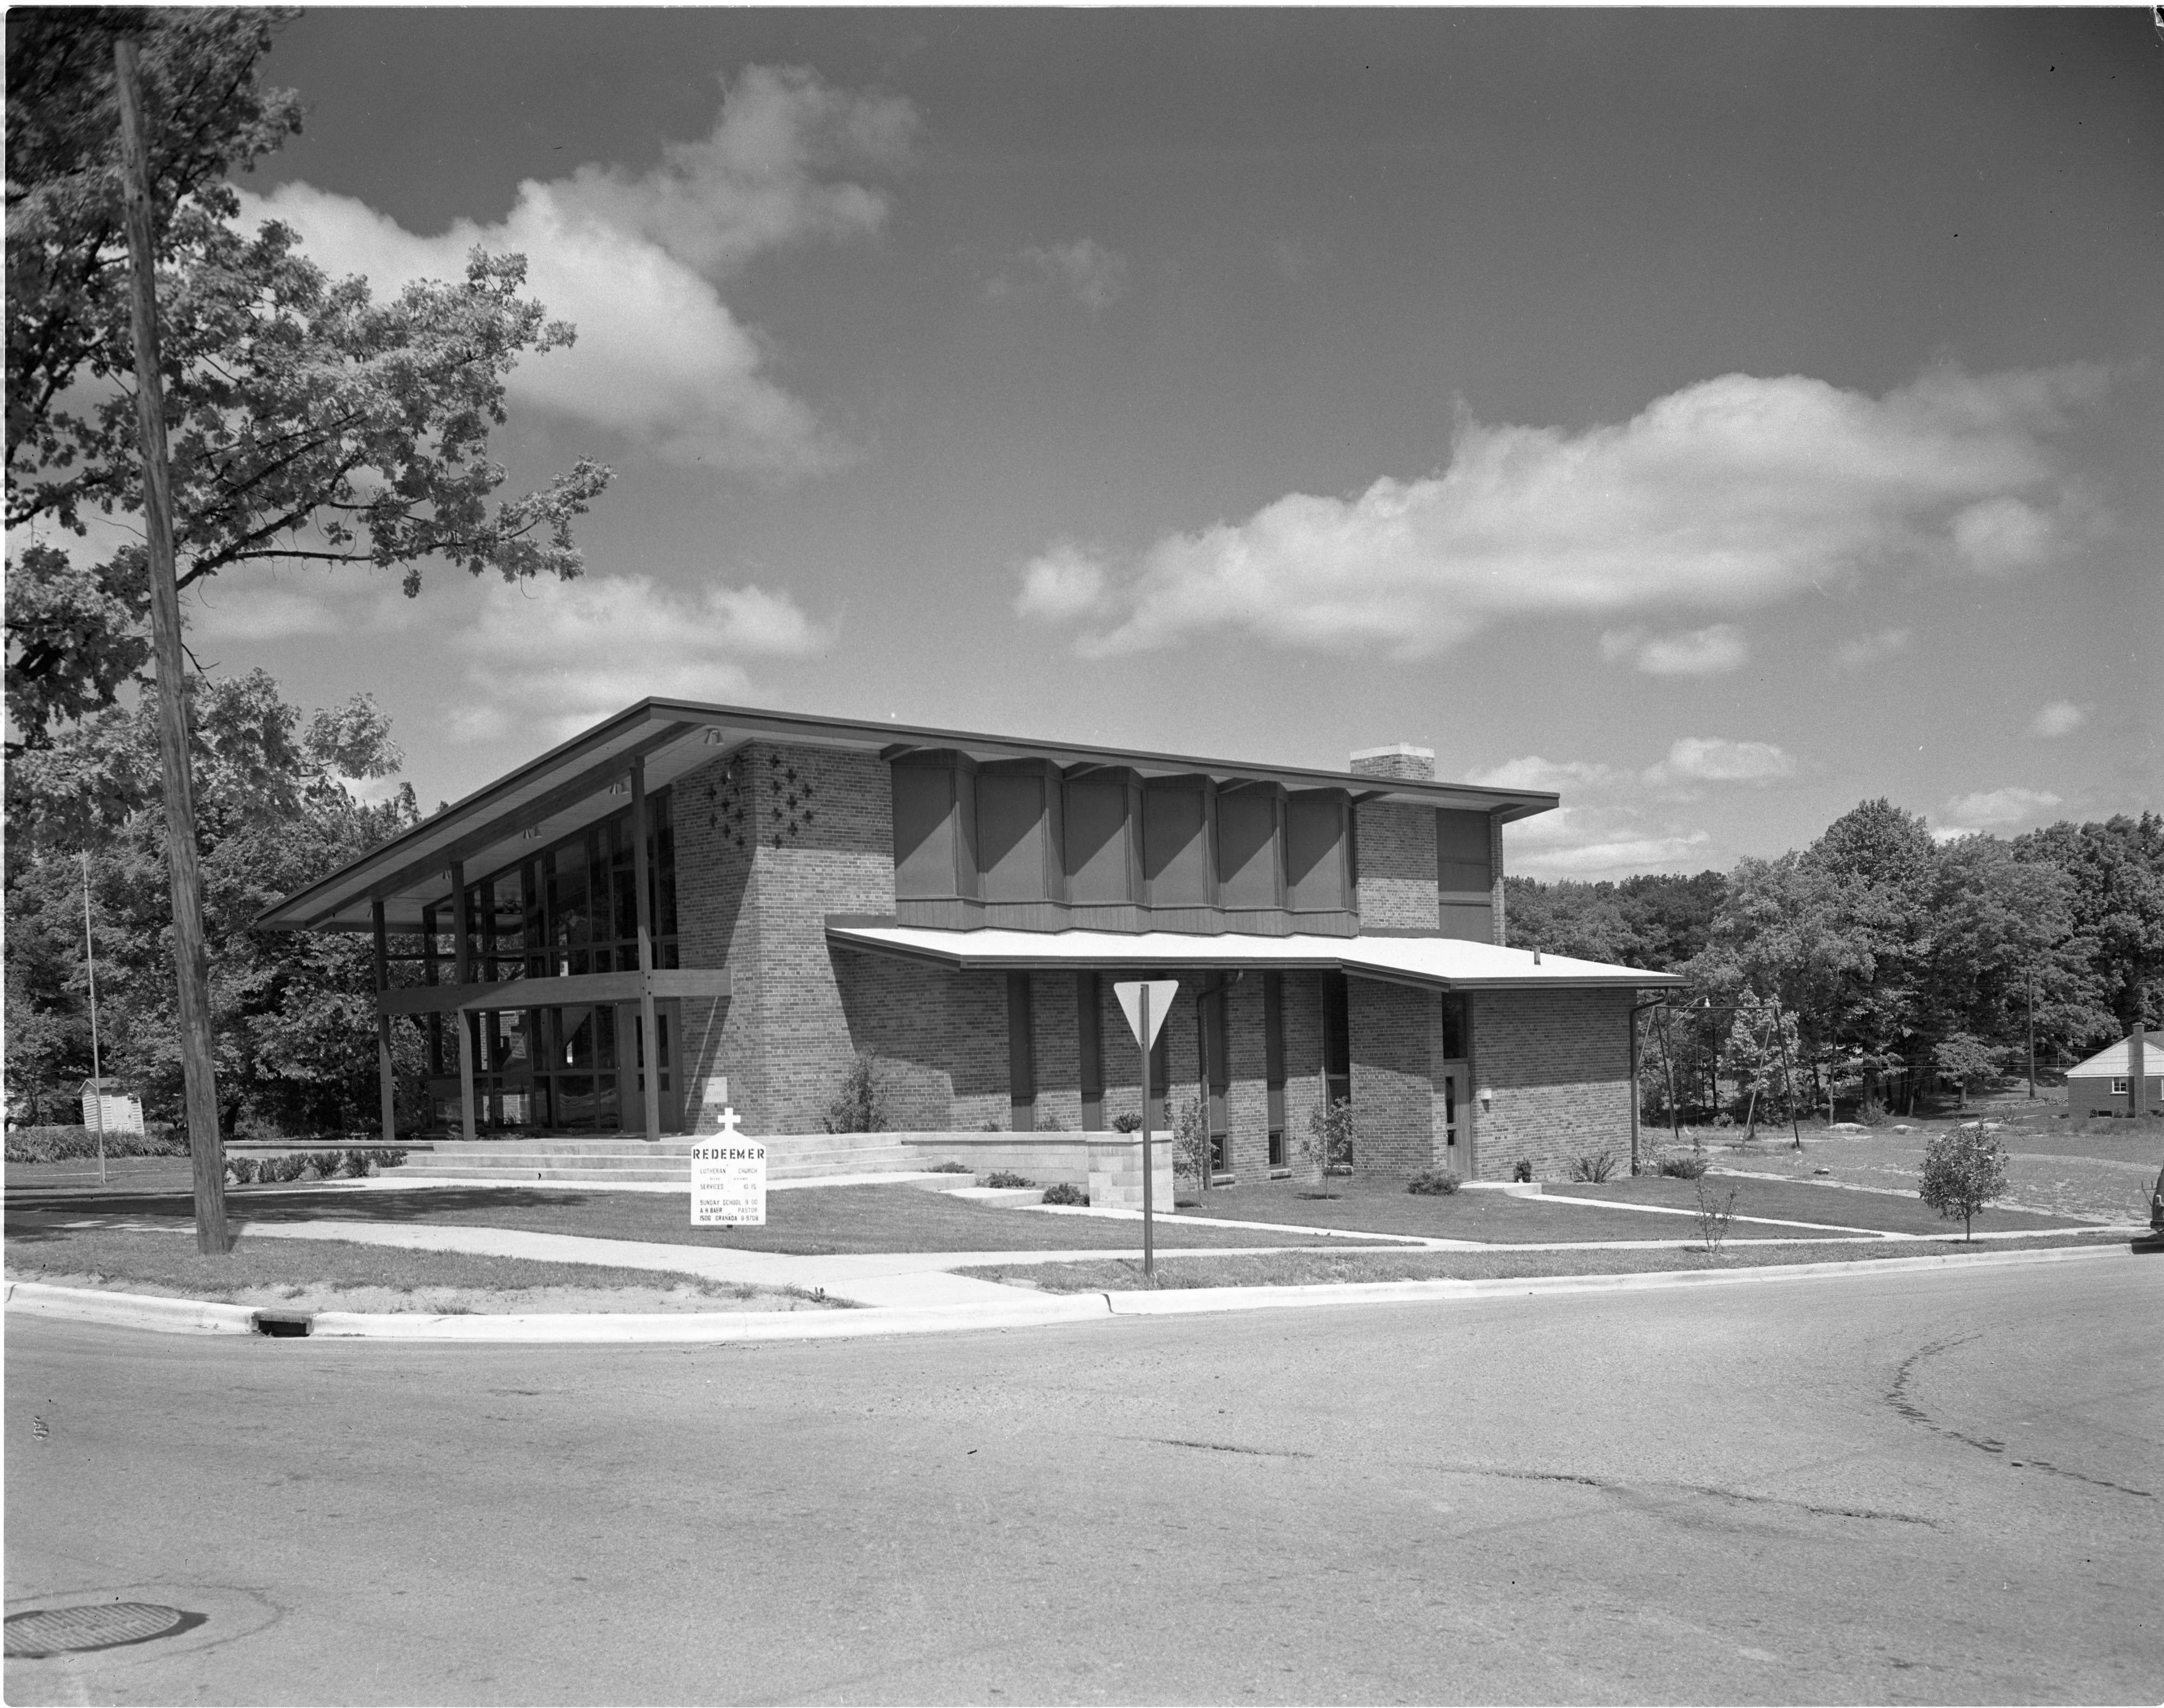 Exterior Of New Redeemer Lutheran Church Building, May 1958 image